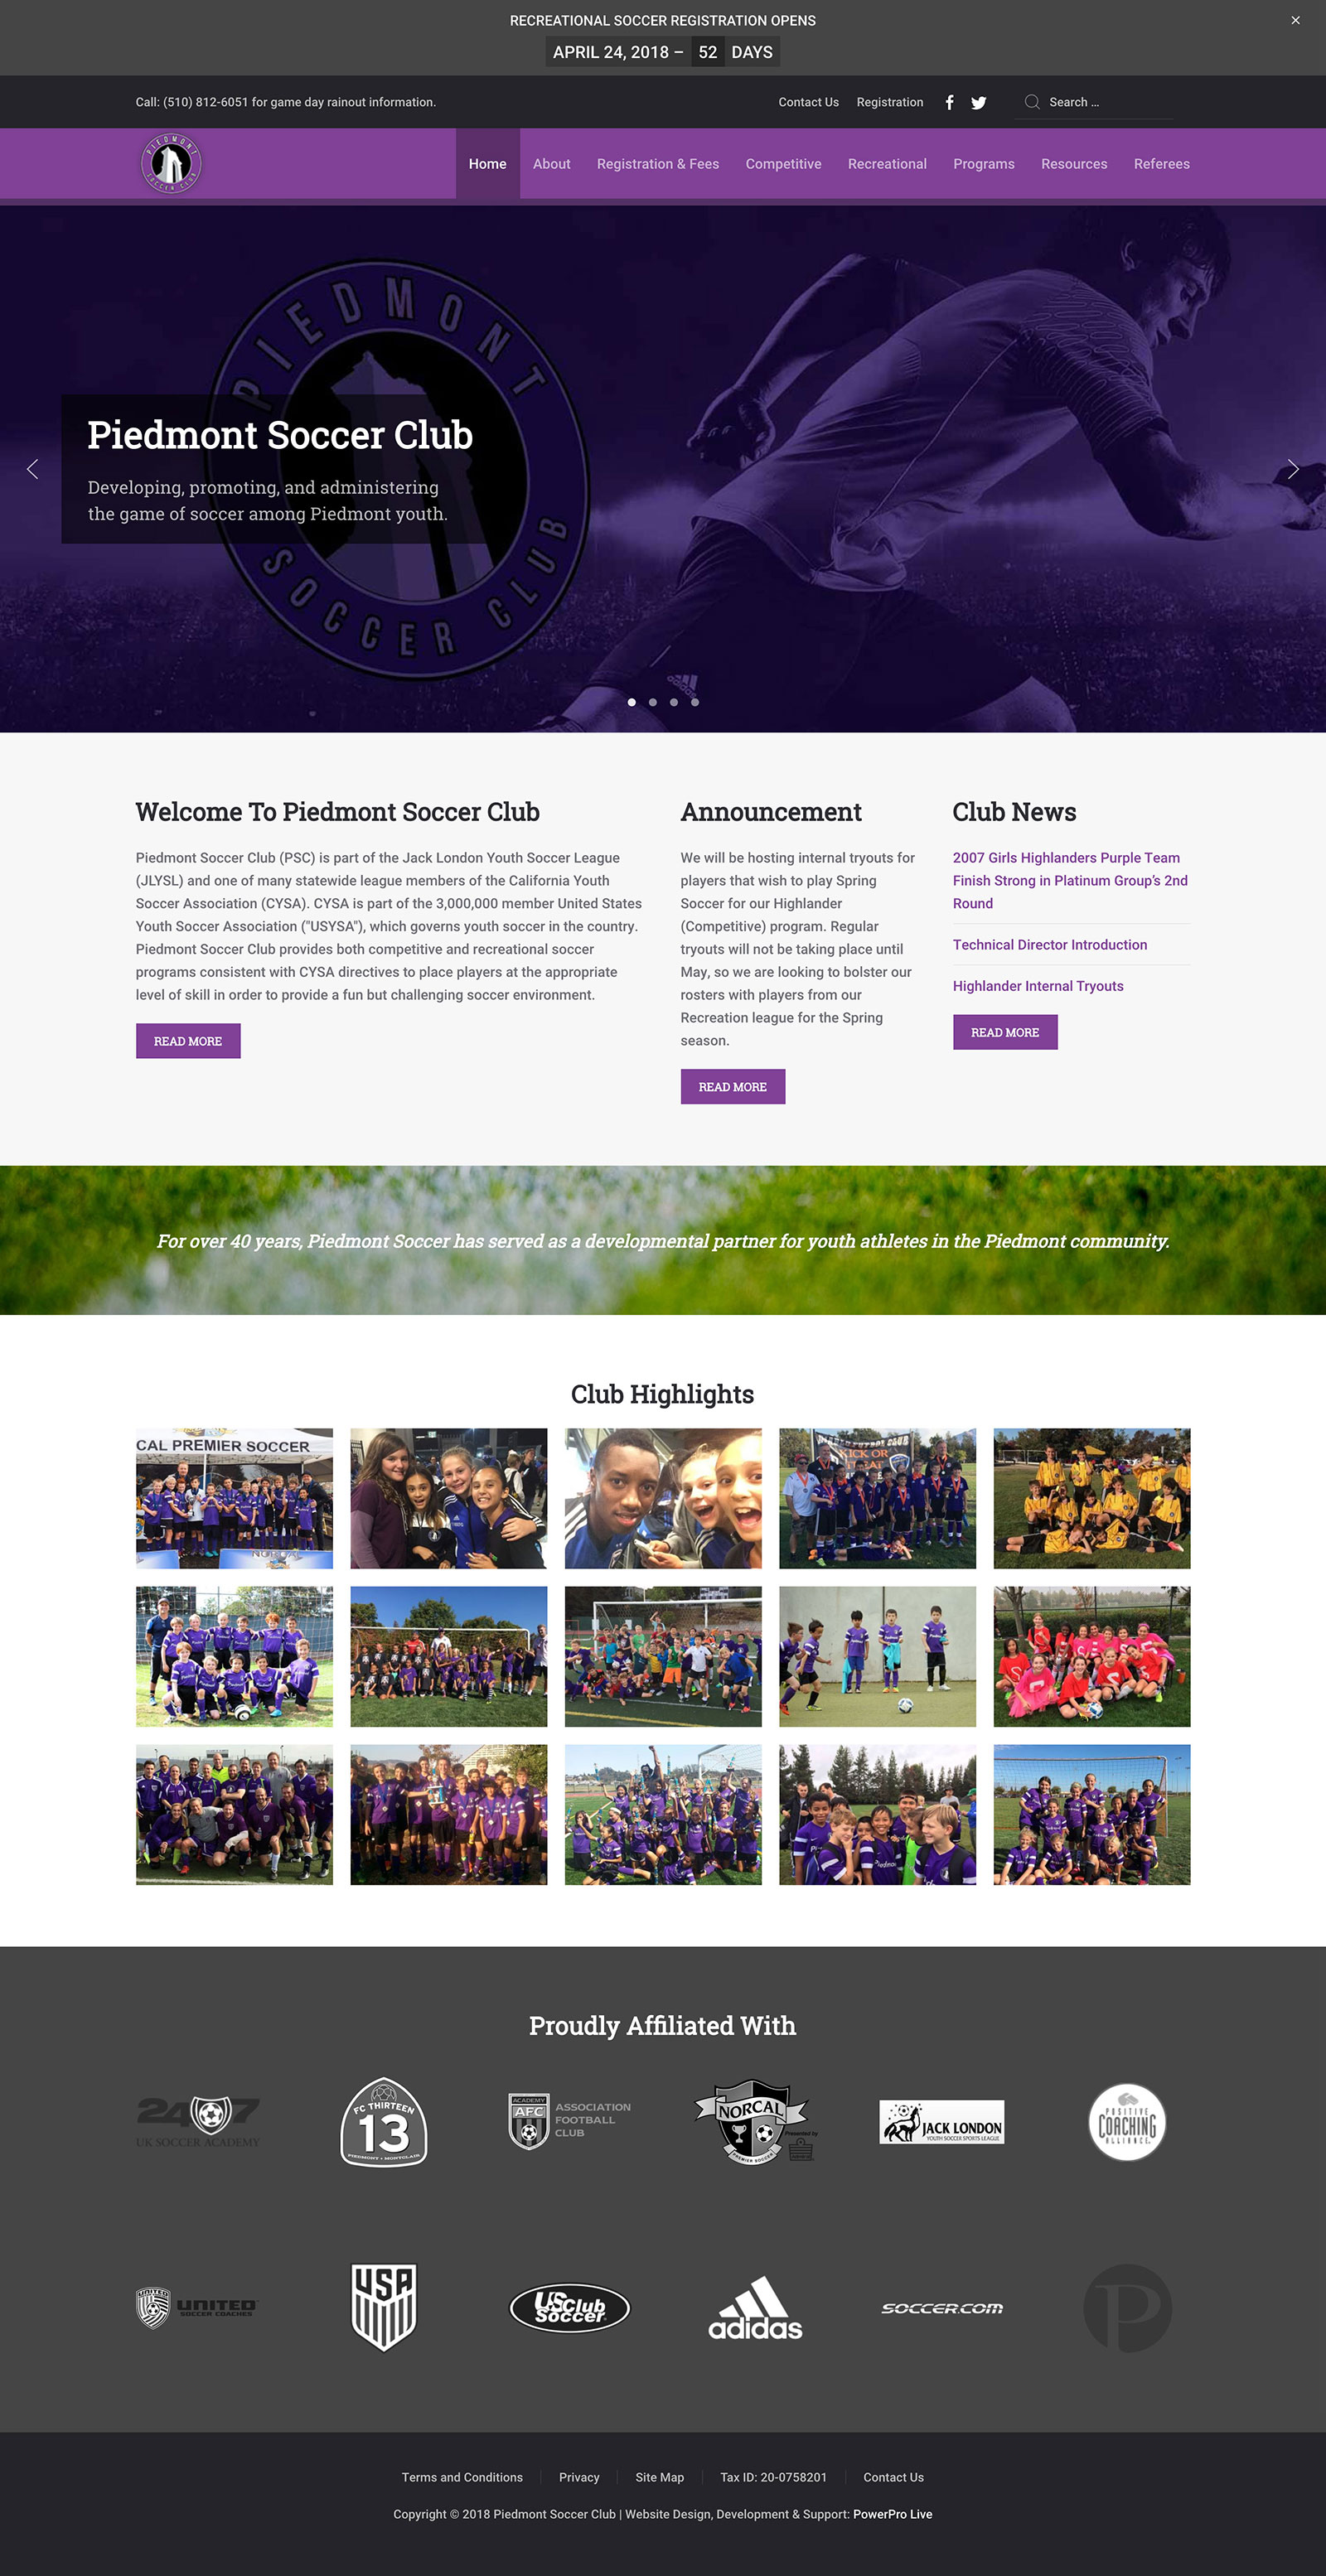 piedmont-soccer-club-website